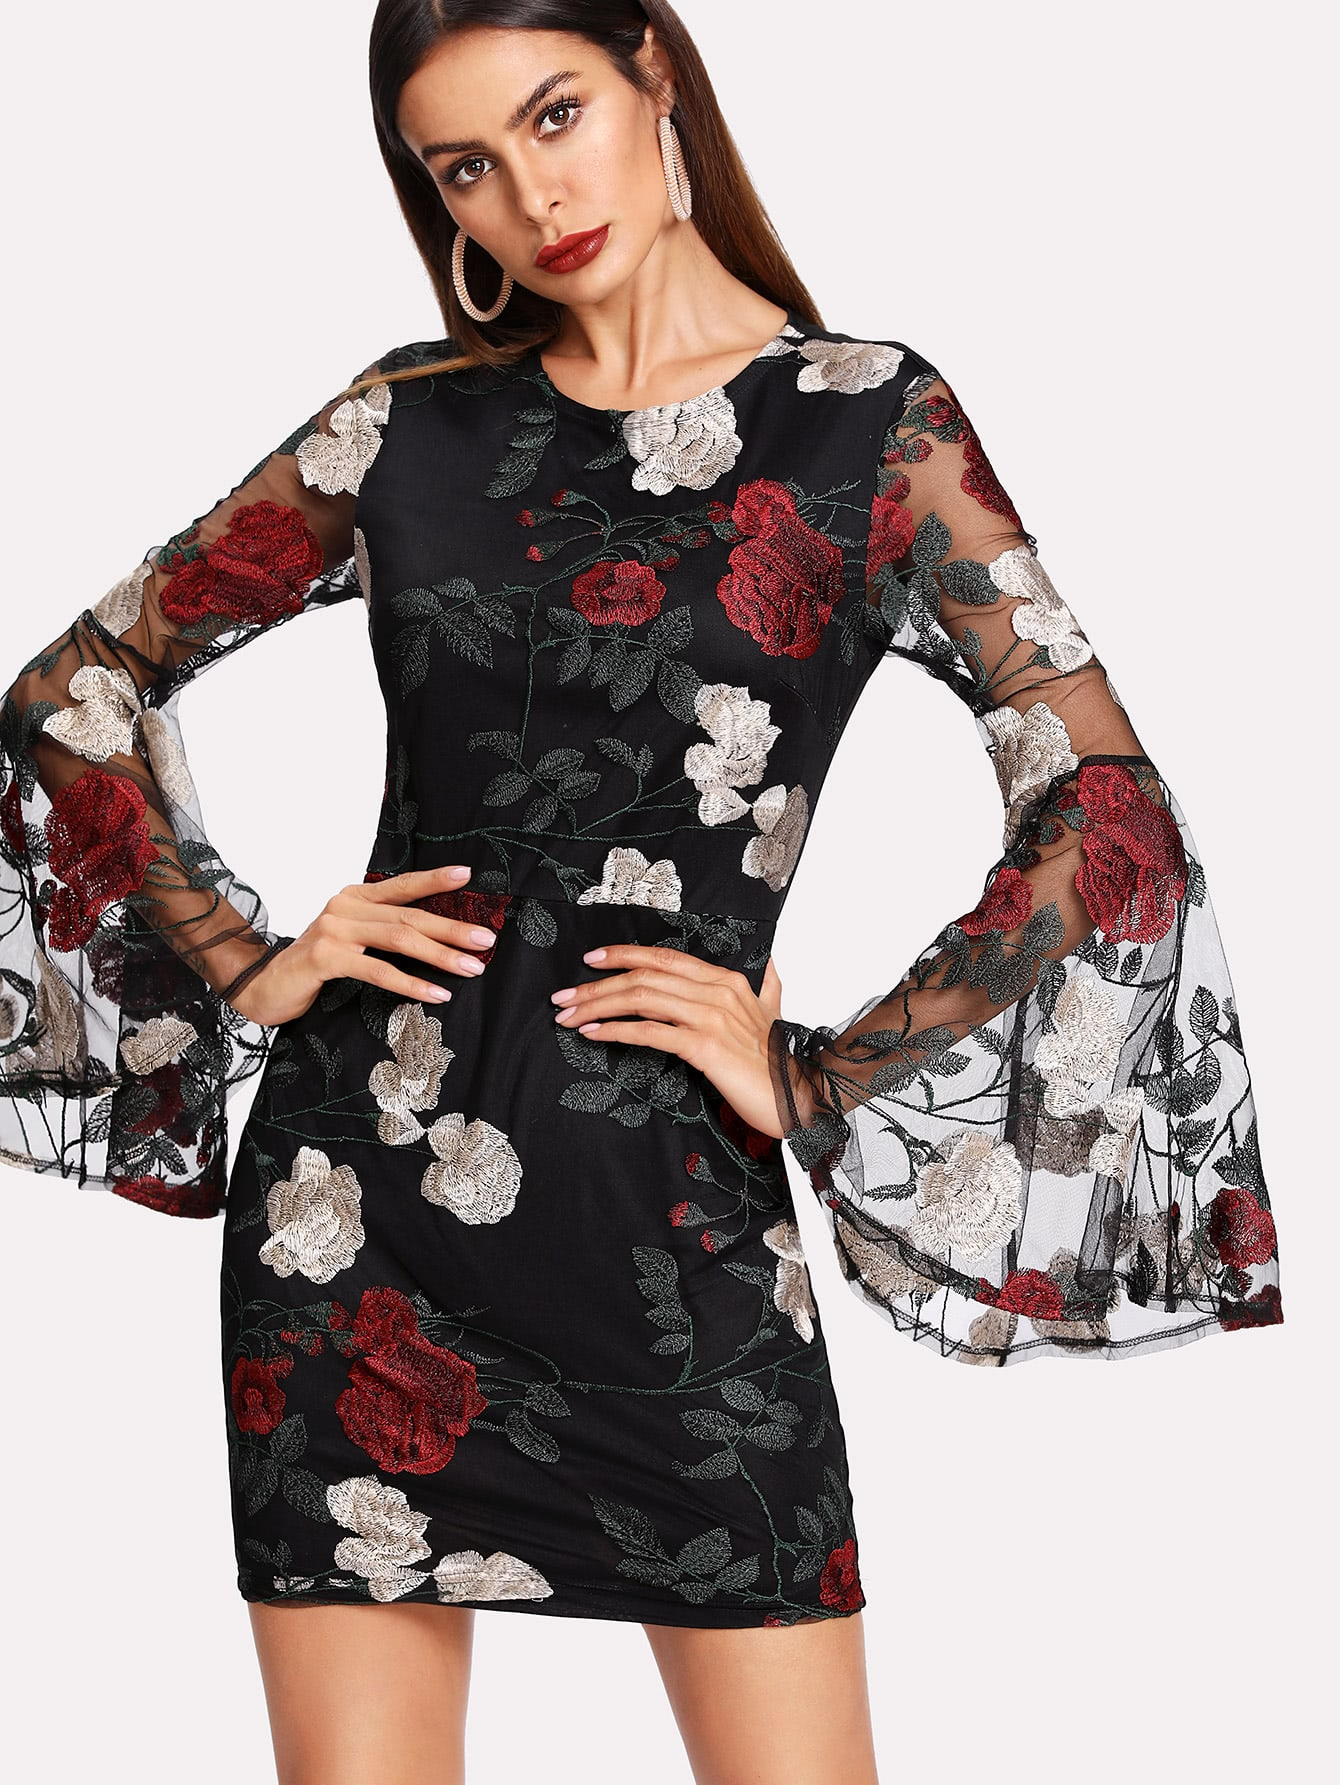 Floral Embroidered Mesh Flounce Sleeve Dress flounce sleeve embroidered mesh dress